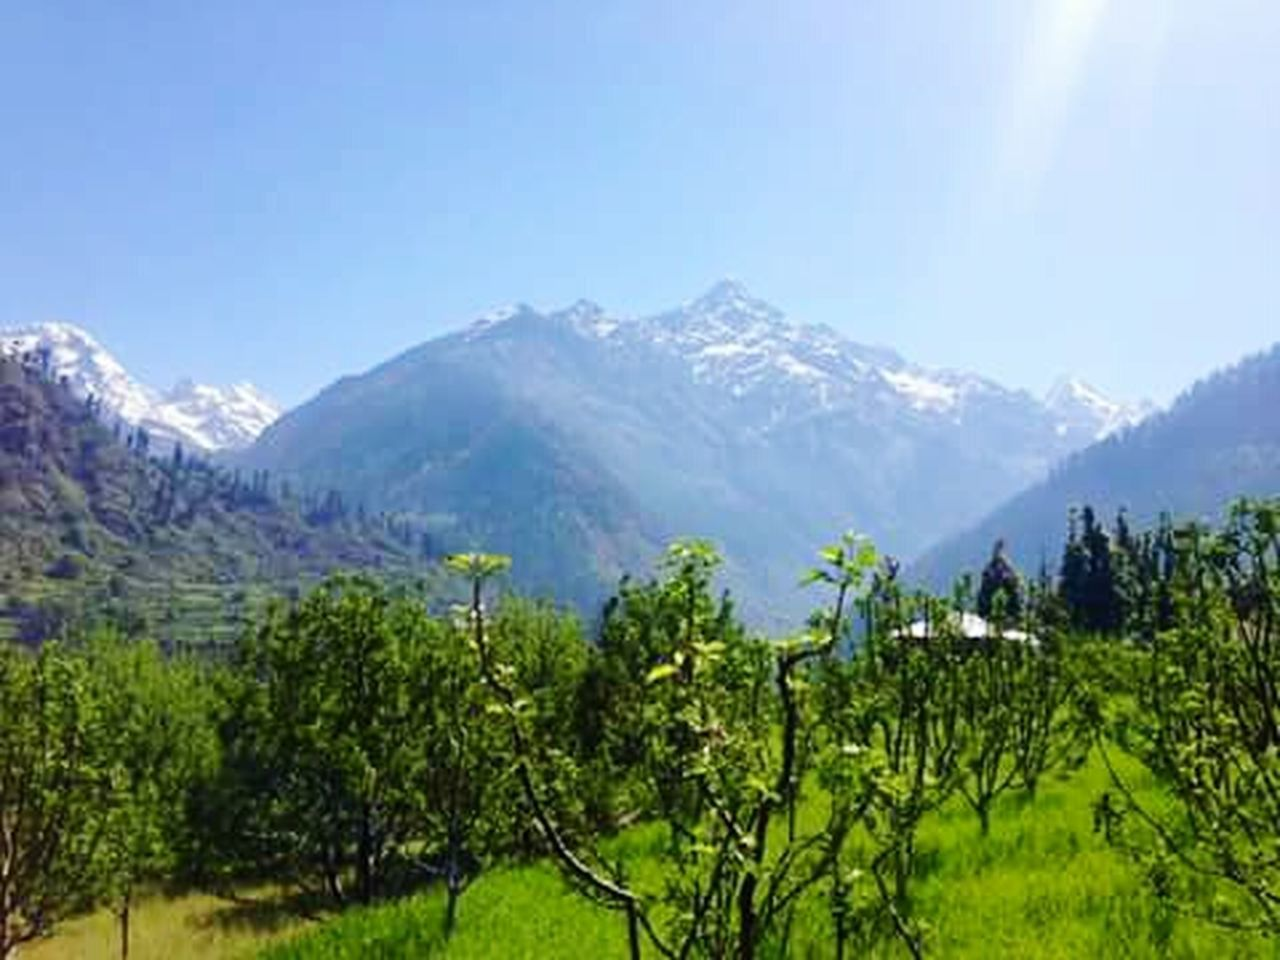 mountain, mountain range, scenics, landscape, nature, tree, agriculture, rural scene, green color, outdoors, clear sky, sky, beauty in nature, sunlight, day, forest, plant, no people, adventure, snow, freshness